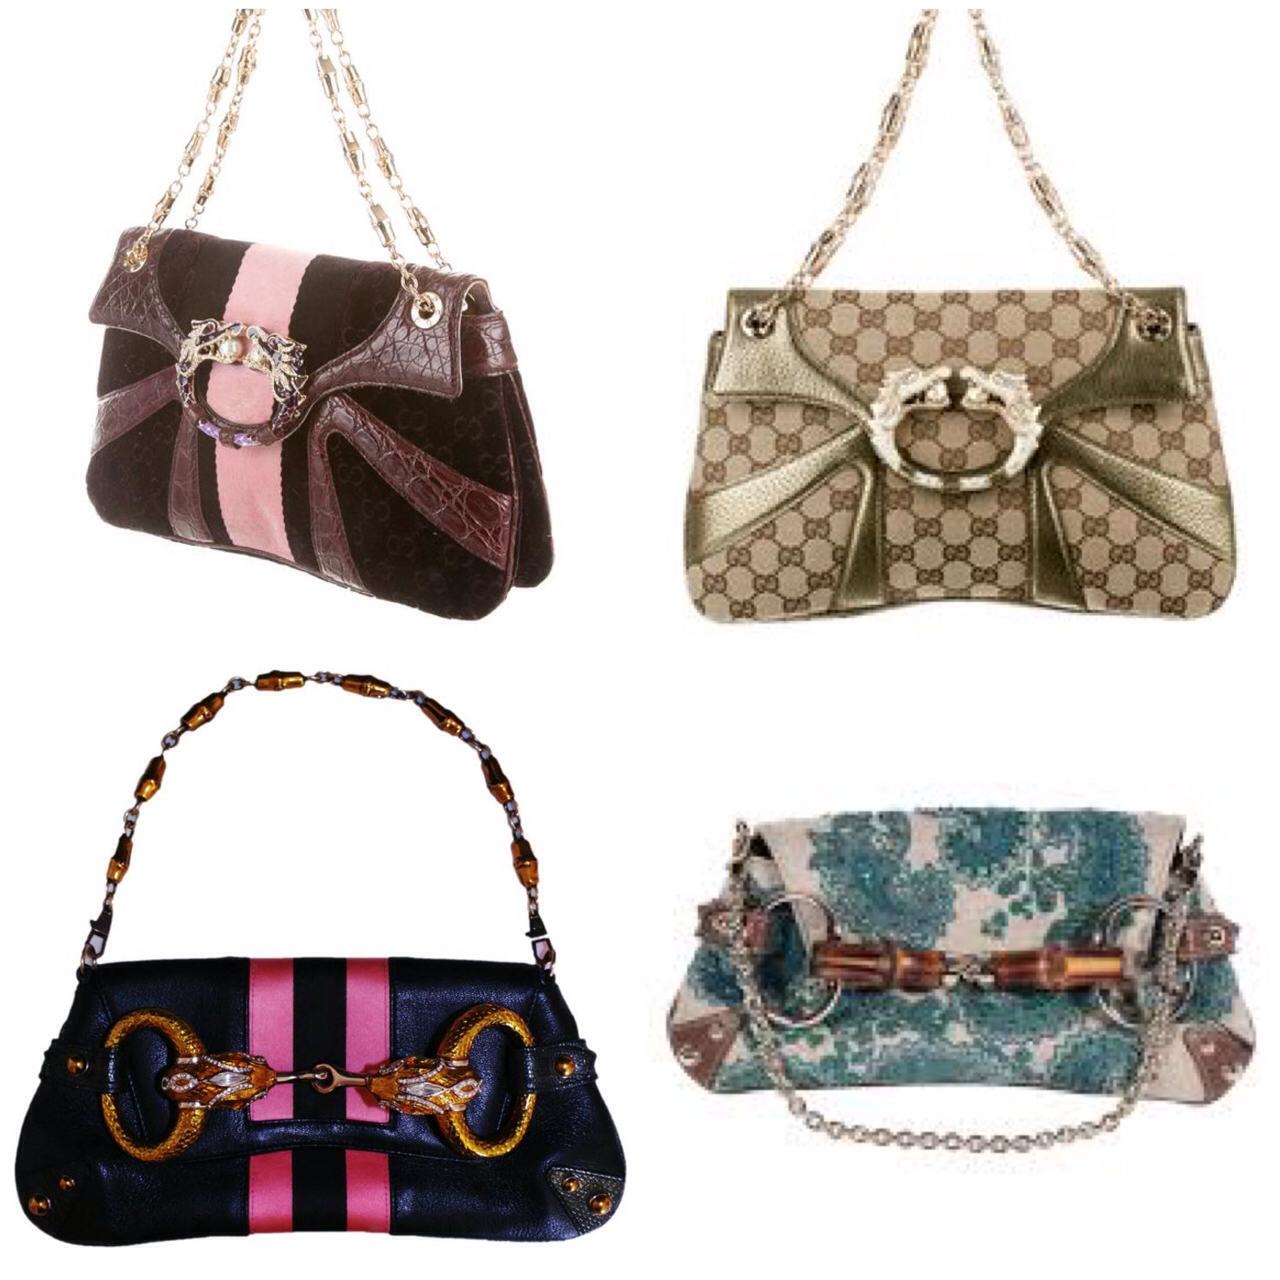 76cc9409e42 That prompted me to google up Gucci Tom Ford handbags and wow! Where was I  when these handbags came out !